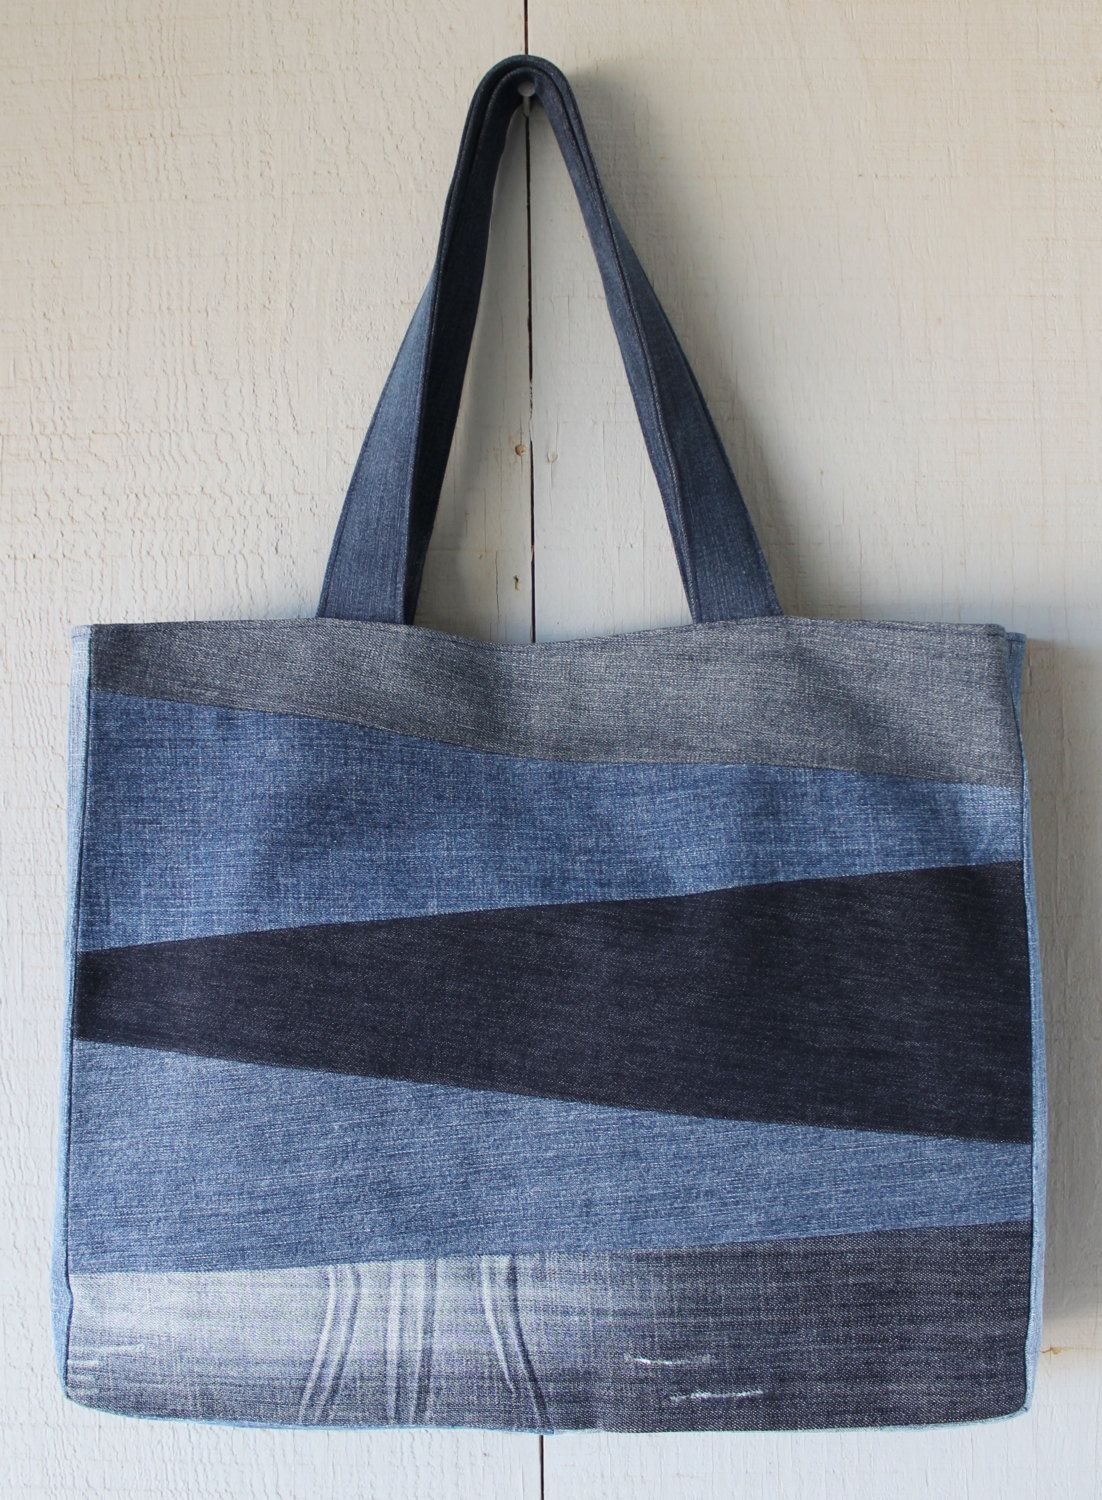 Patch Front Denim Tote Bag with Two Interior Pockets ...